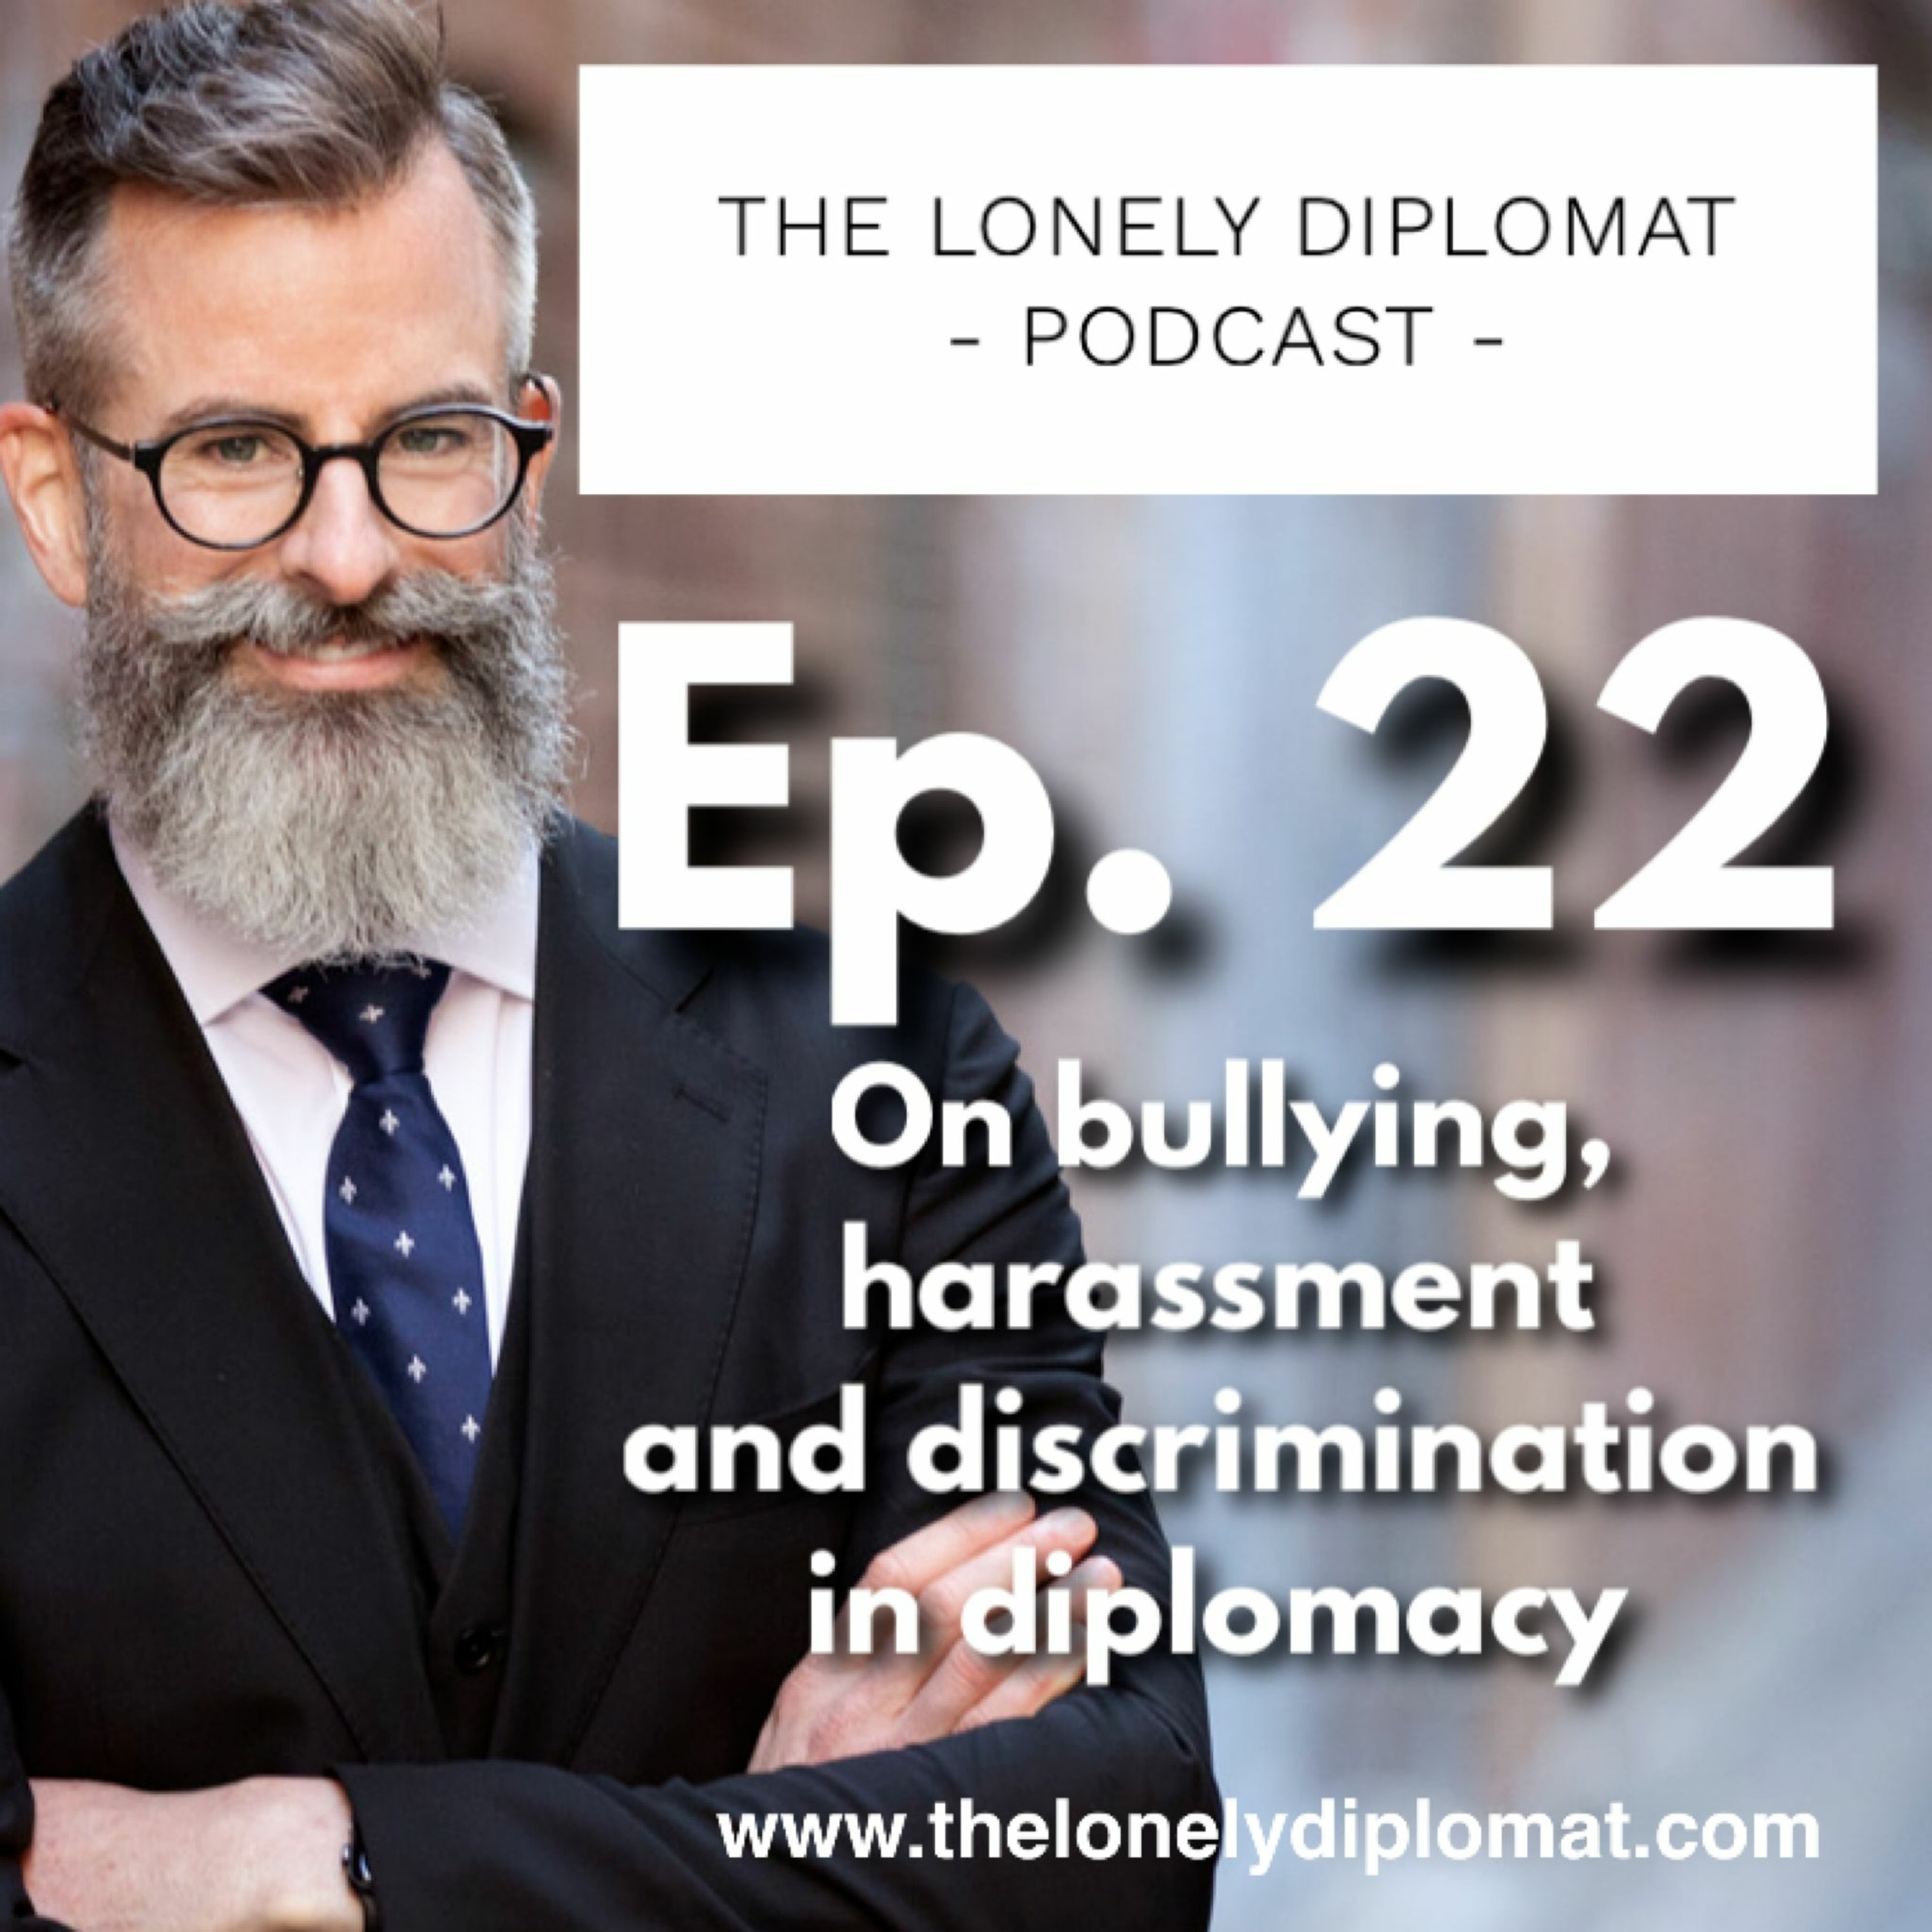 Ep. 22 - On bullying, harassment and discrimination in diplomacy